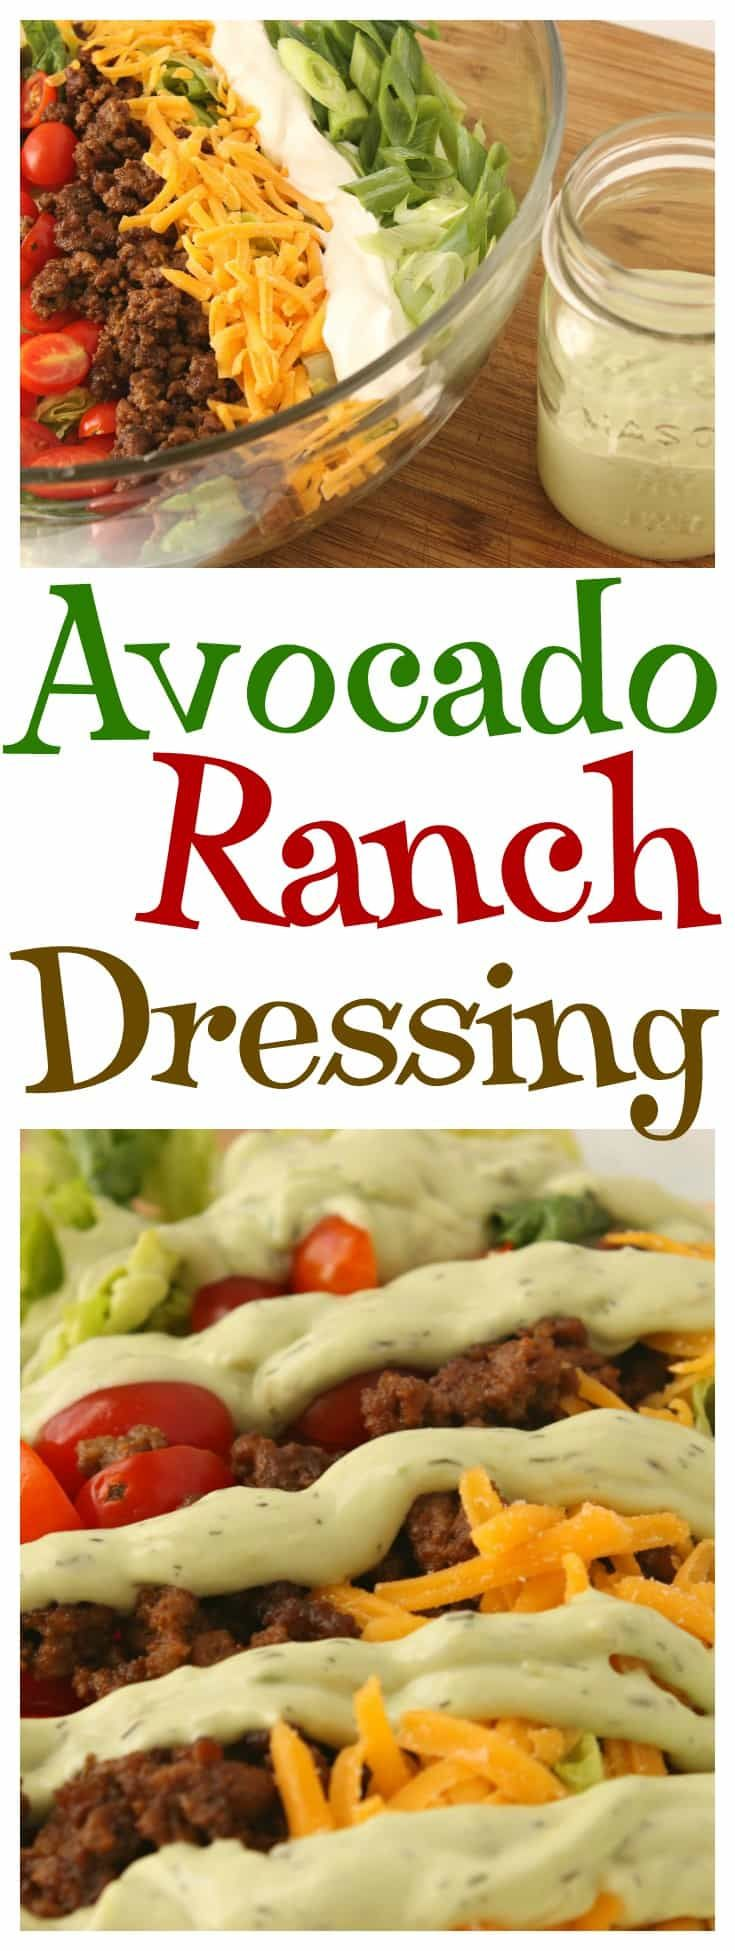 This simple and delicious homemade avocado ranch dressing is done in just minutes and will add tons of flavor to your favorite salads or Mexican dishes!